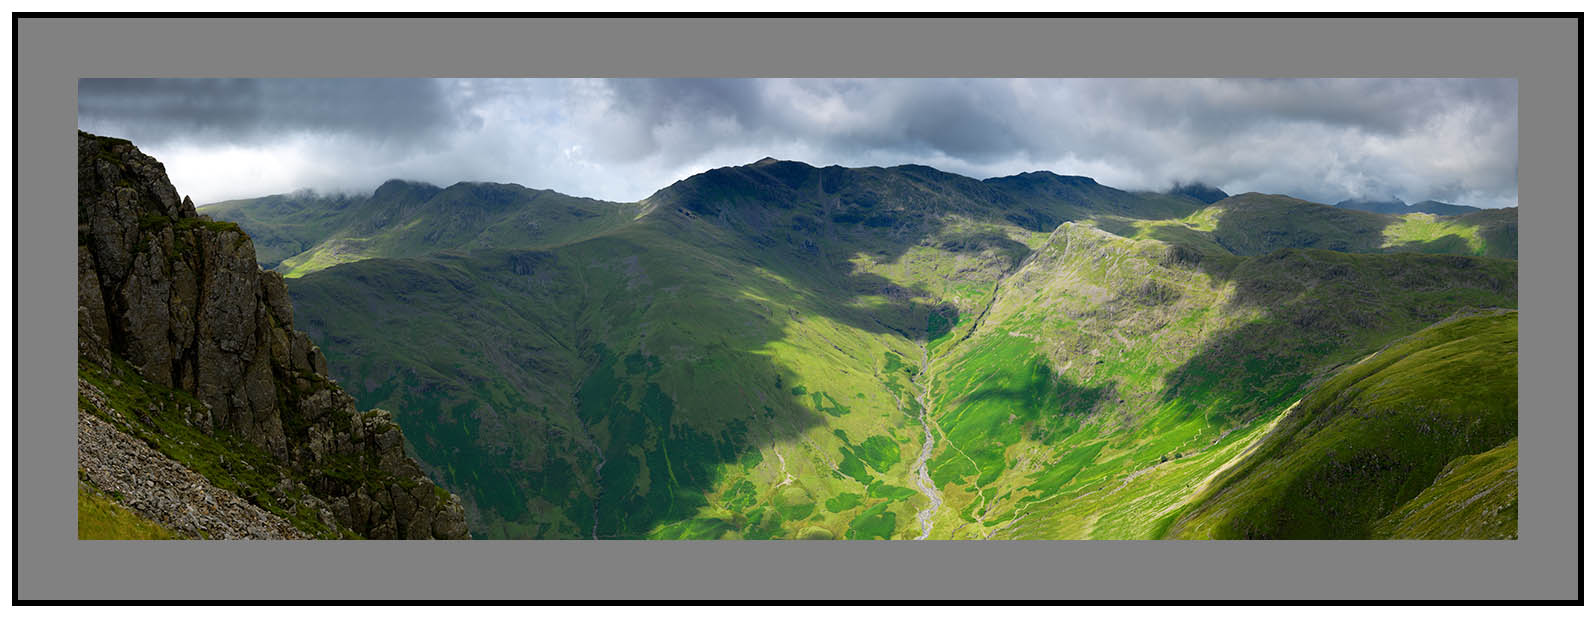 England's finest ground?-in the shadow of Pike o'Stickle from Crinkle Crags over Bowfell and Esk Pike to Great Gable and Green Gable